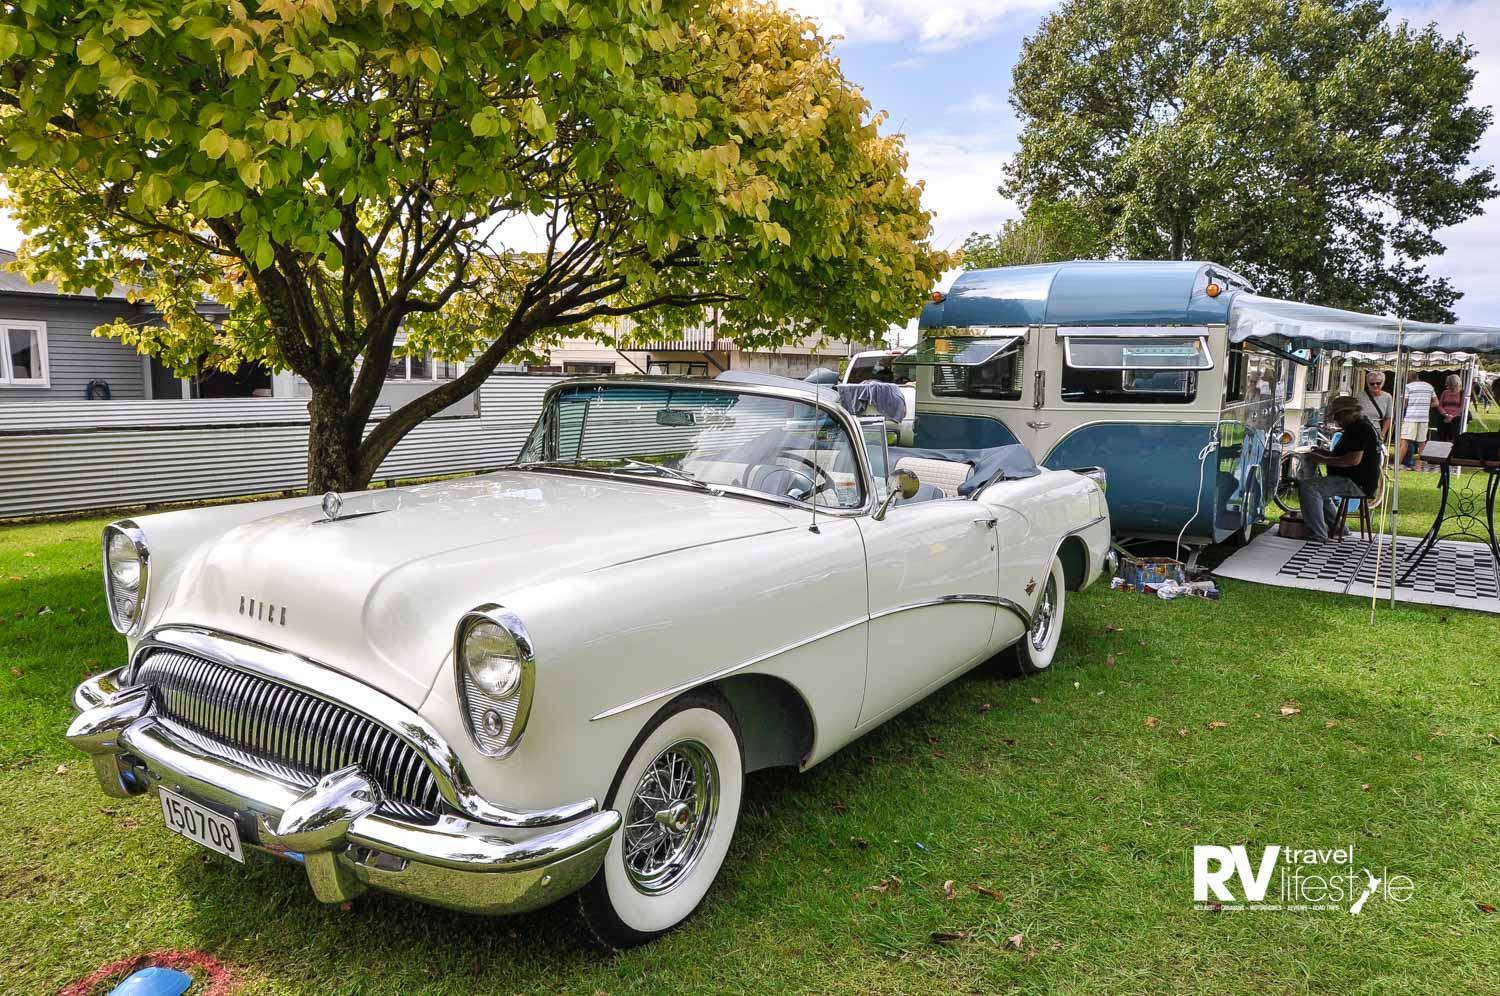 Classy Combo – this is a 1954 Buick Skylark and a 1957 Auckland Caravan Company-built caravan